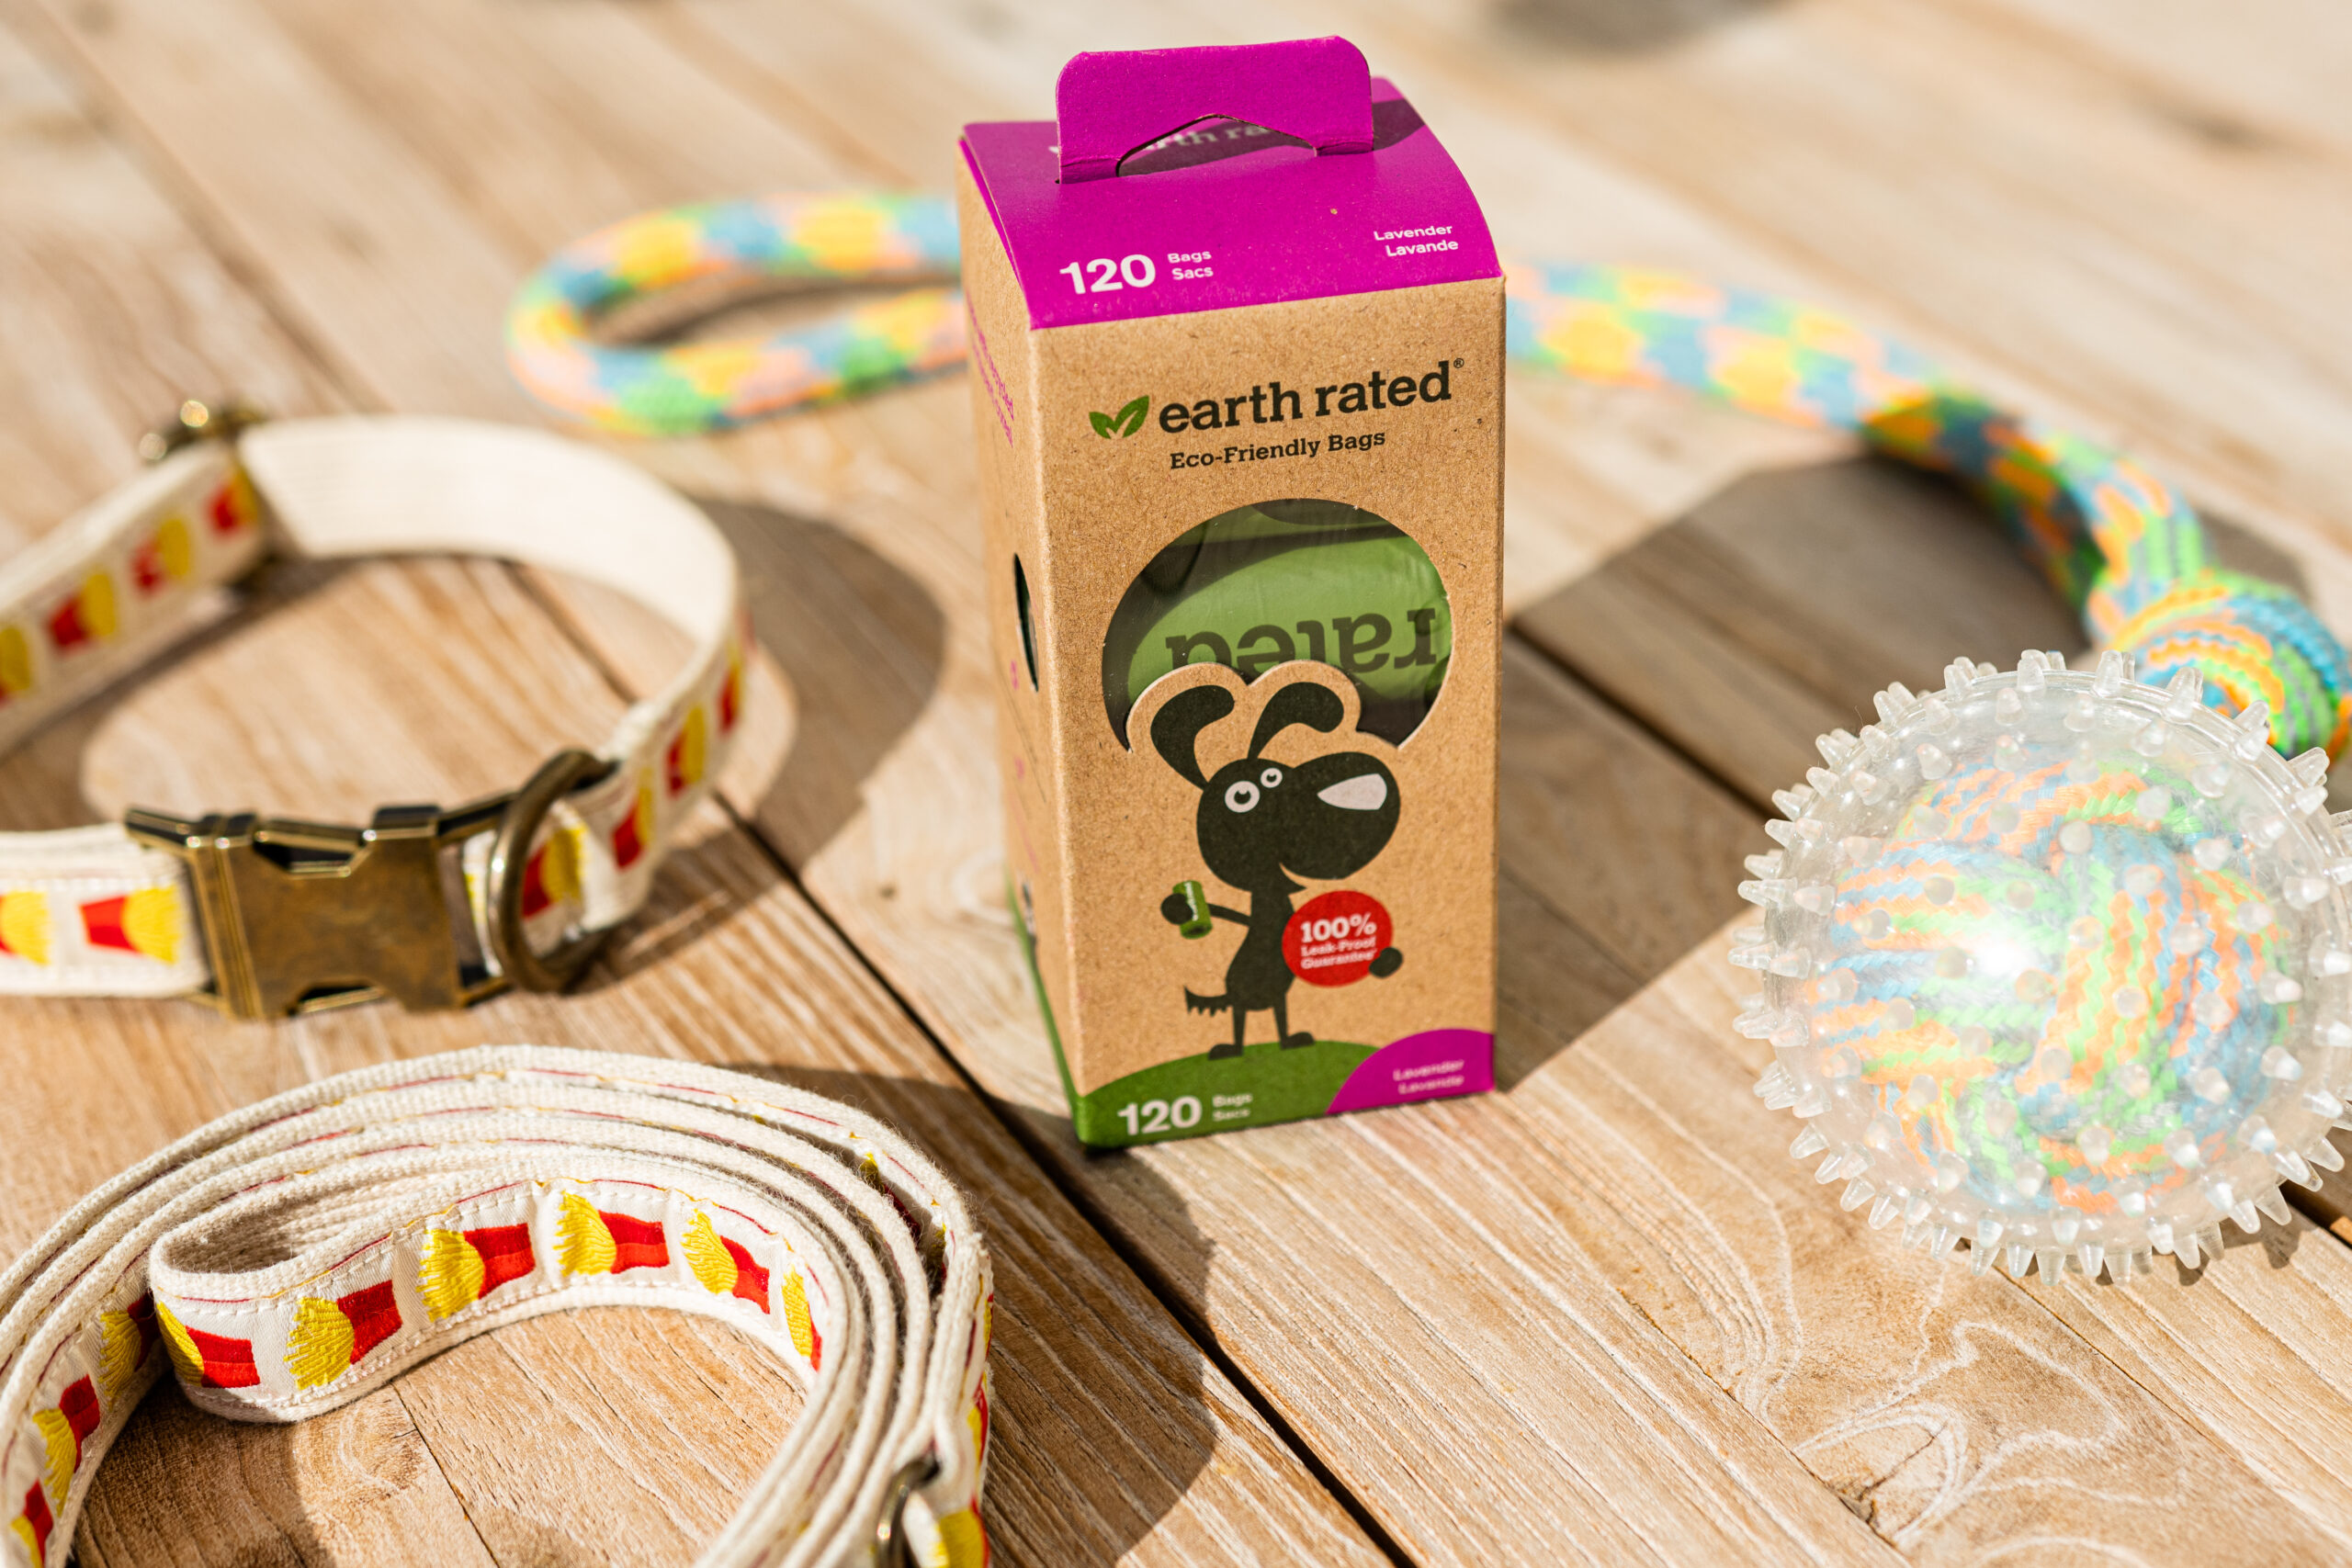 Biodegradable Dog Poop Bags without Plastic – Do they hold tight?